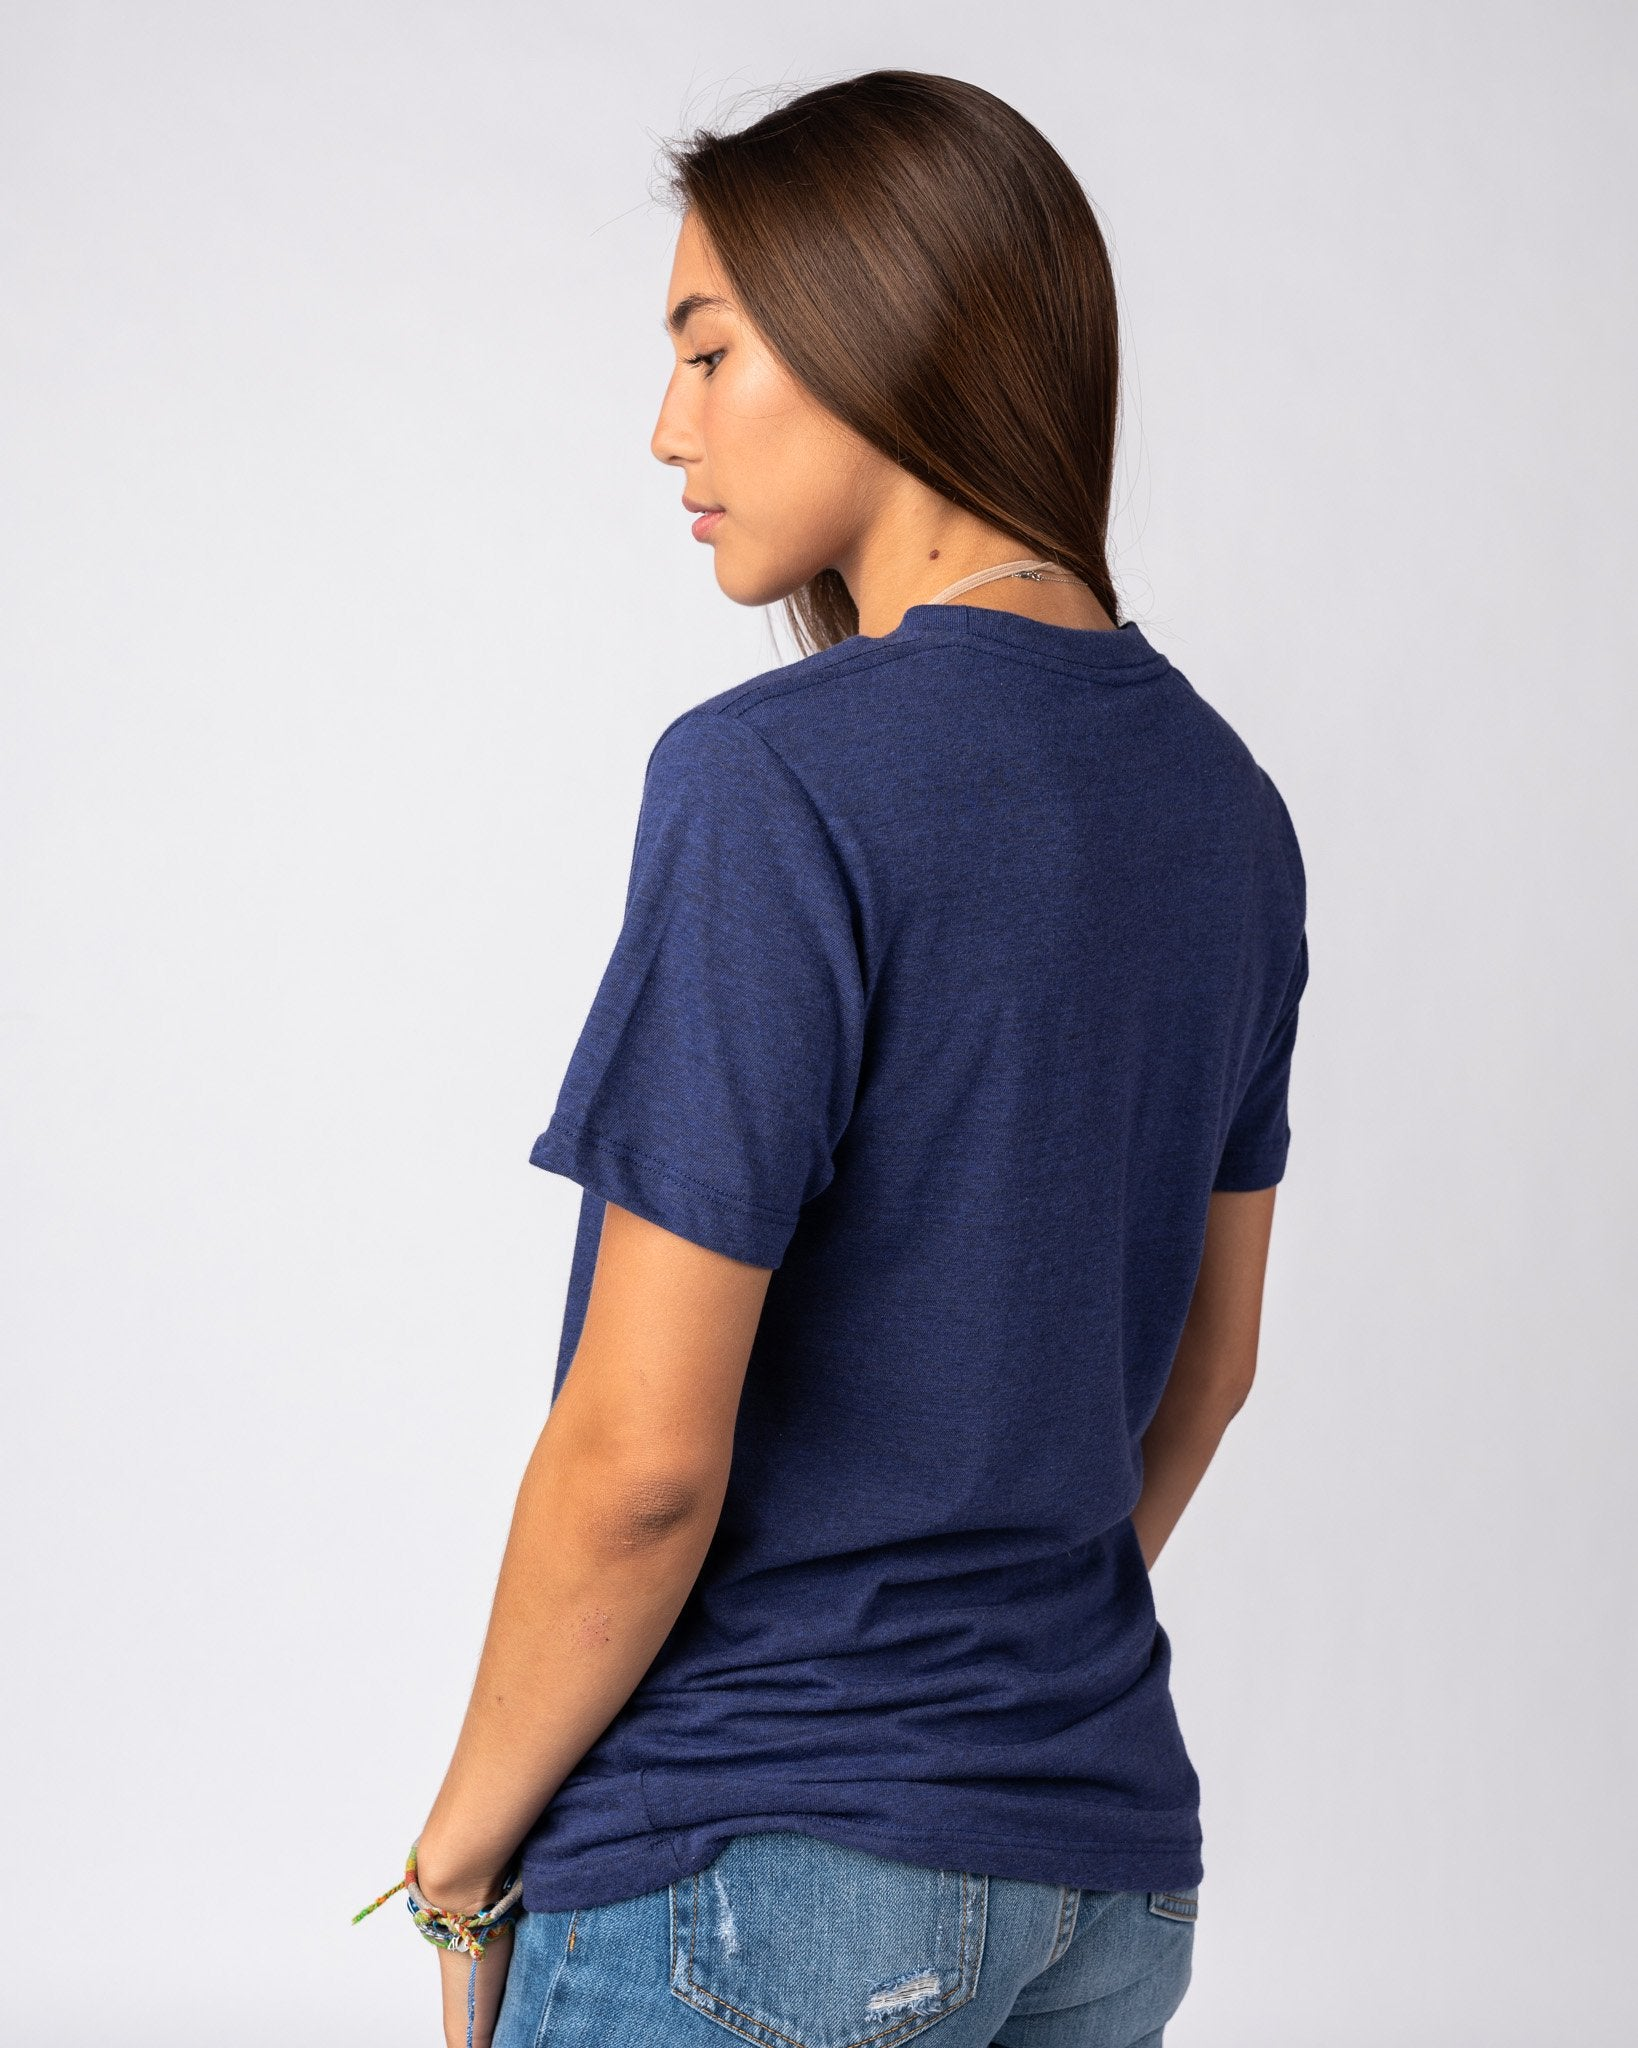 Navy Unisex Essentials Collection Vintage T-Shirt Side